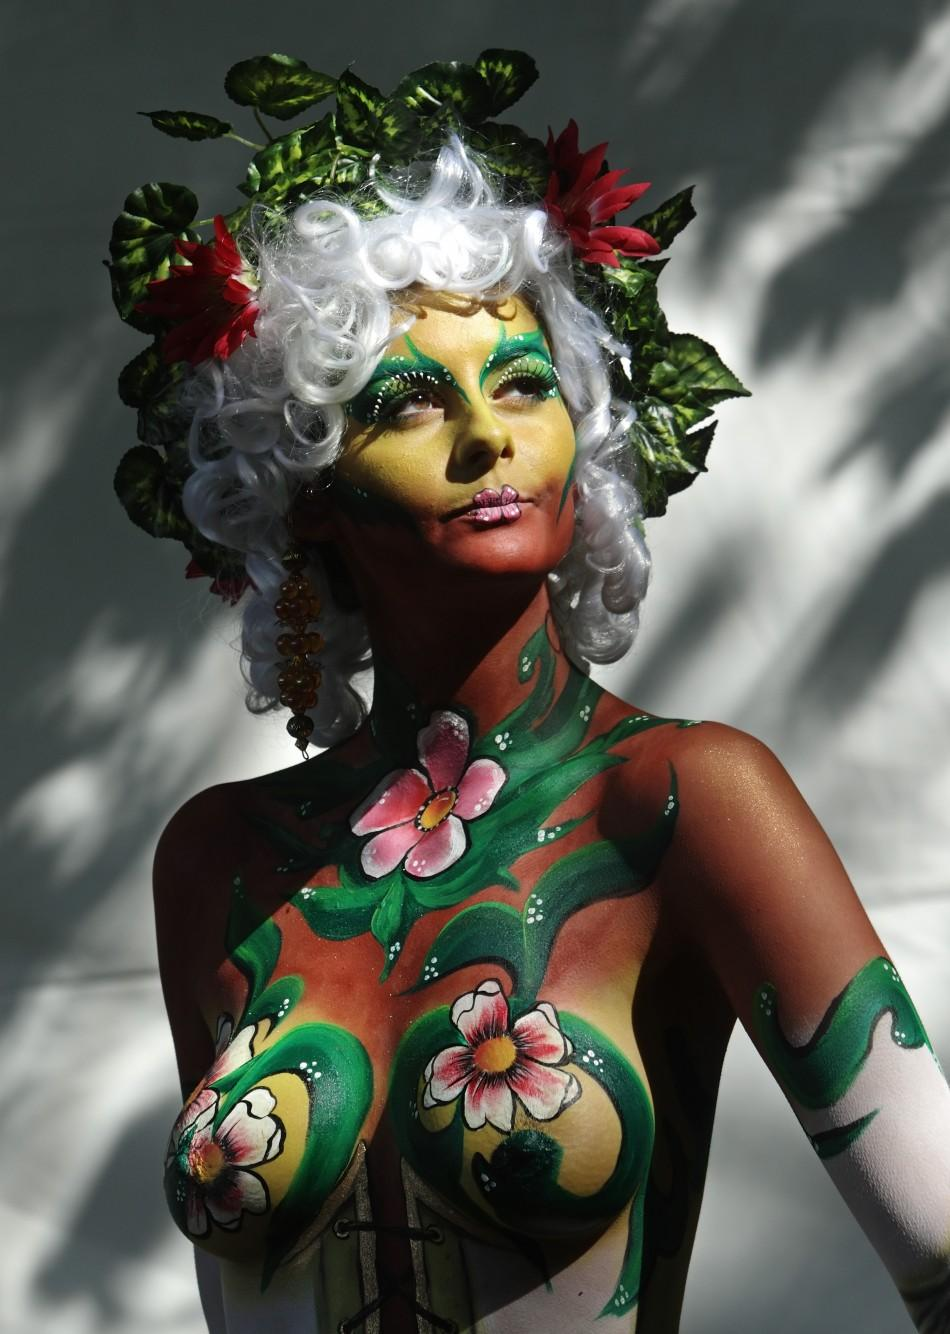 Wild photos from bodypainting festival 2011 World Bodypainting Festival: The Wild Photos